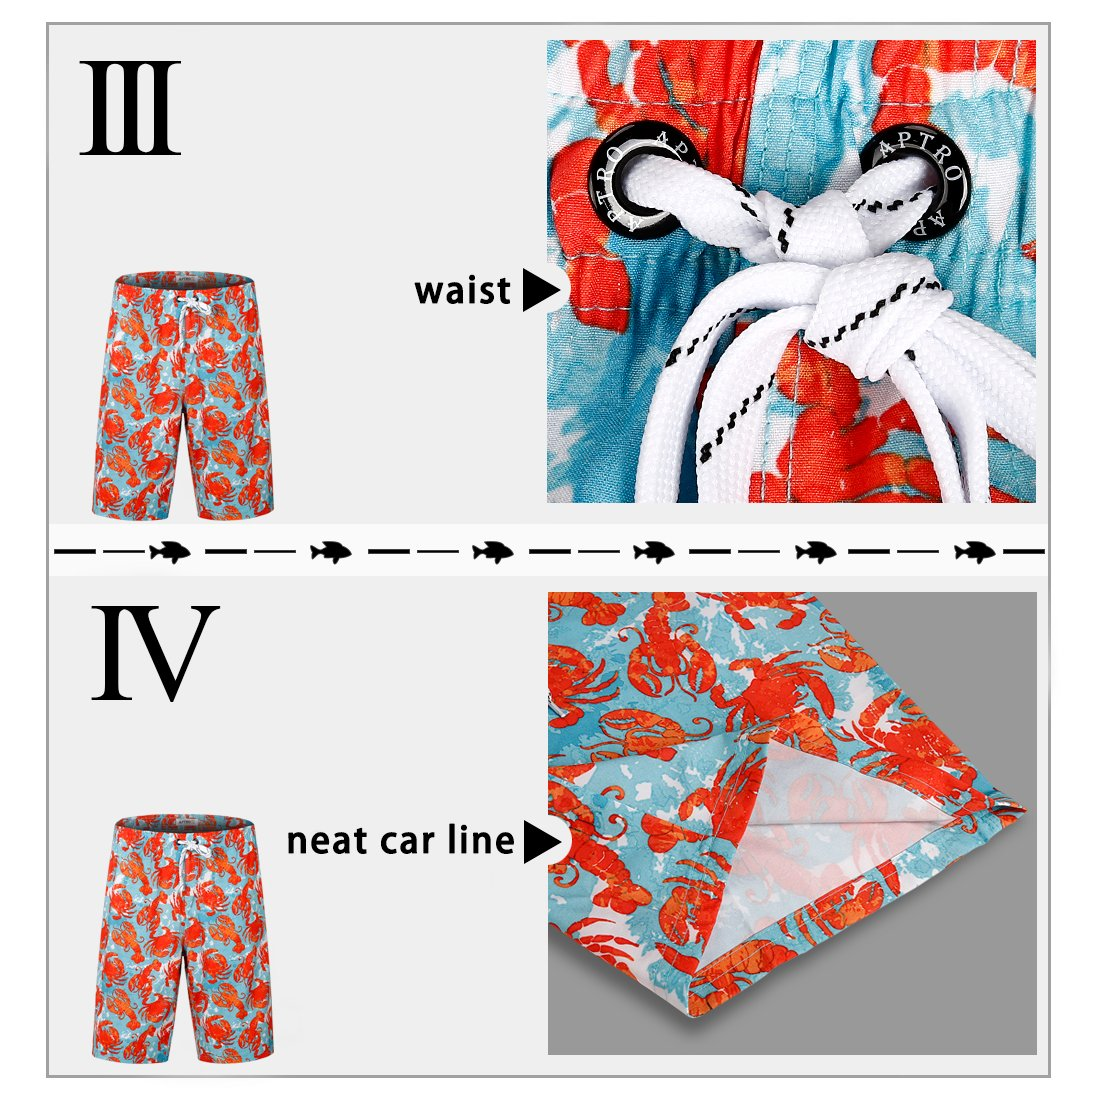 APTRO Men's Swim Trunks Crab Printing Bathing Suit #HW016 XXL by APTRO (Image #4)